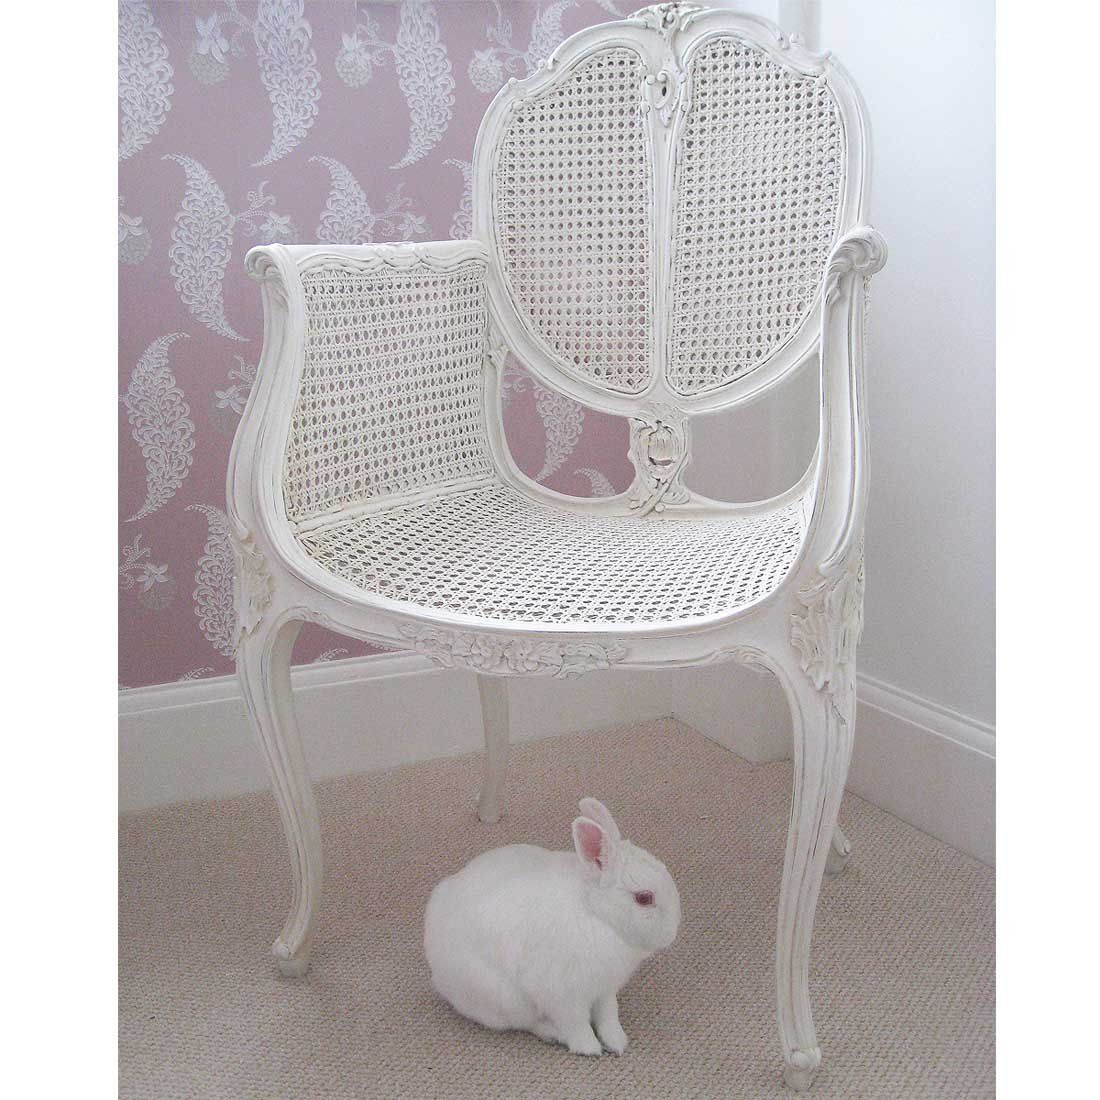 Provencal Rattan White Chair | Bedroom chair, Rattan and Bedrooms